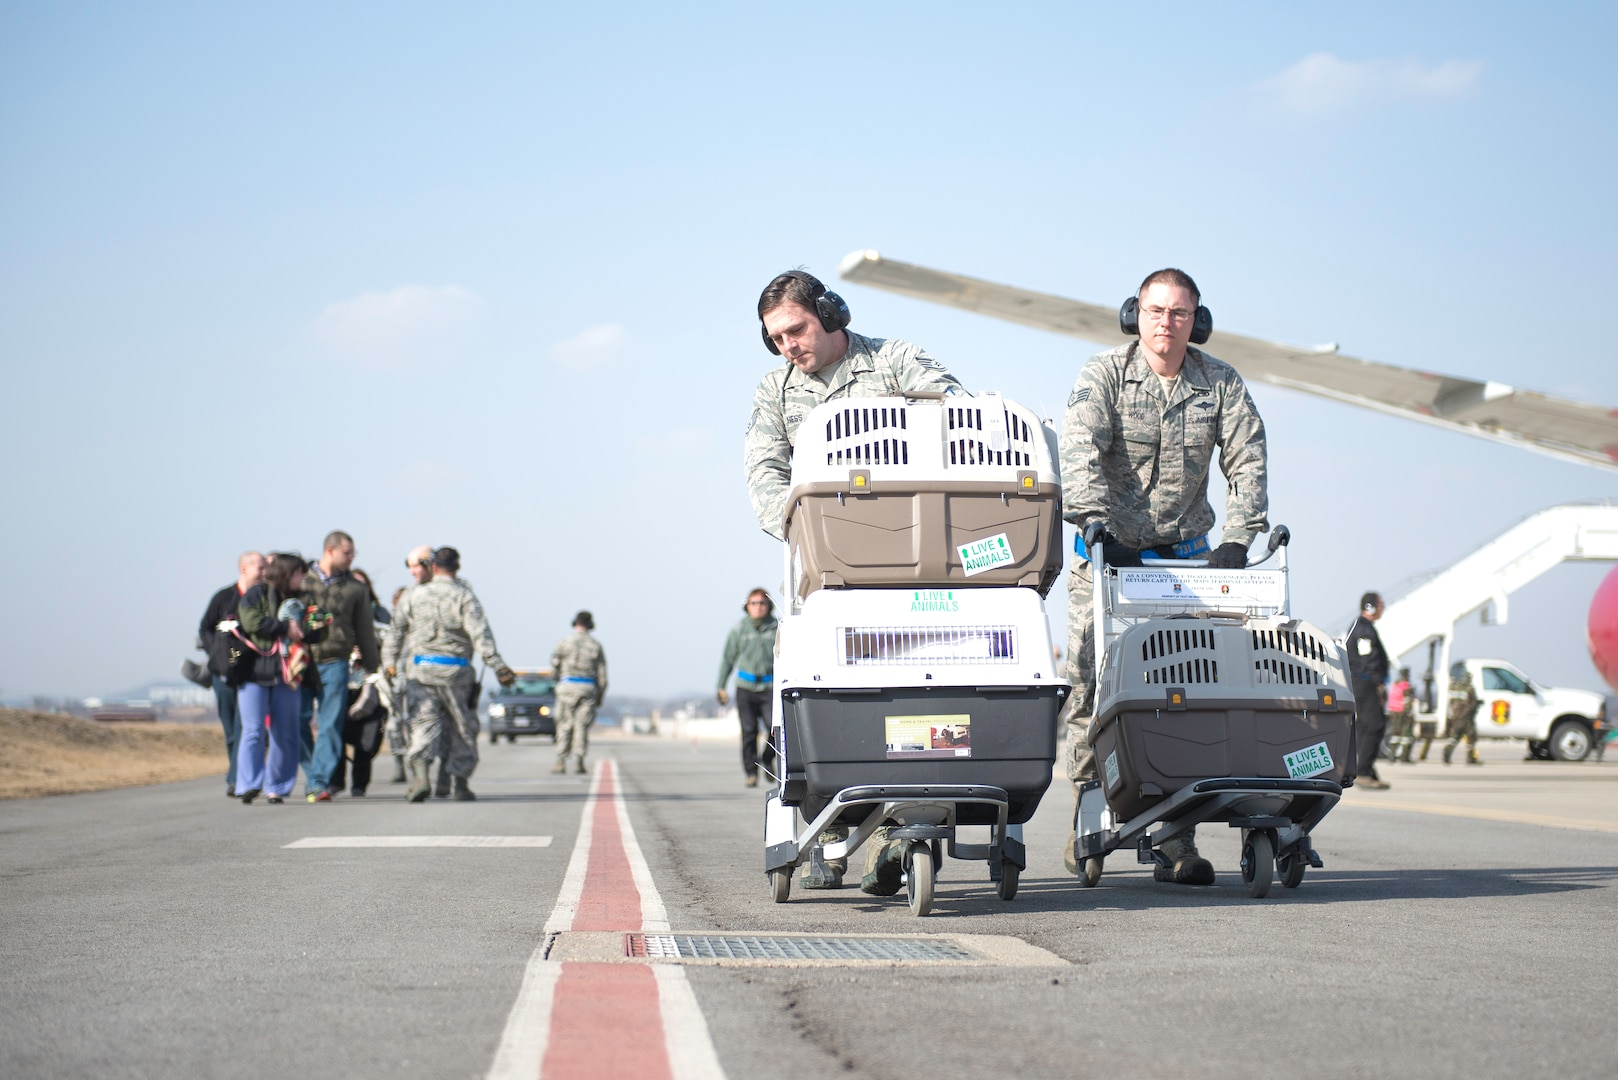 """Air Force Staff Sgt. Evan Hess (right) and David Webb, 731st Air Mobility Squadron passenger terminal supervisors, walk kennels with the first dogs transported on the """"Patriot Express"""" to the Osan Air Base passenger terminal, Republic of Korea, March 2, 2015. The new service provided by the Air Force offers cost savings to the Department of Defense and service members changing duty stations with pets. (U.S. Air Force photo by Staff Sgt. Shawn Nickel/Released)"""